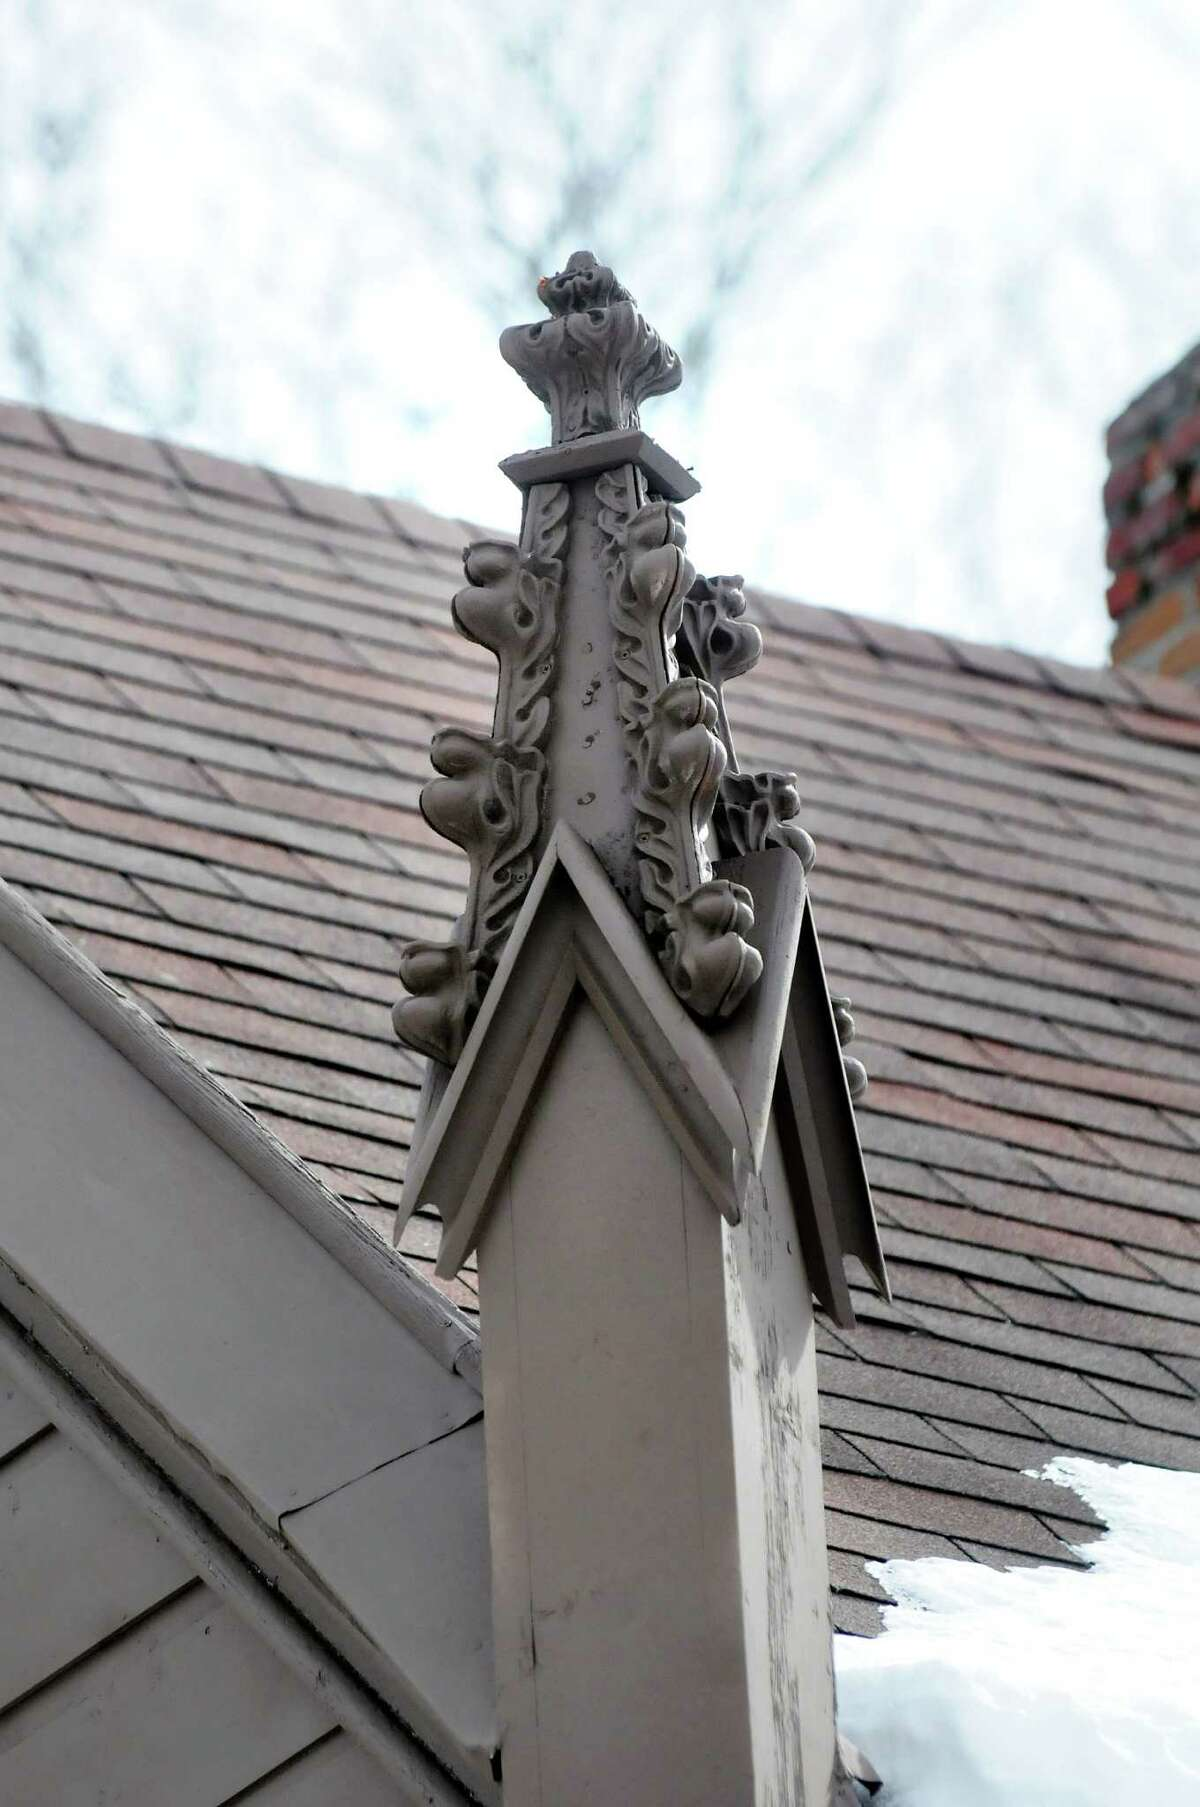 Pinnacles on the John L. Schoolcraft house at 2299 Western Turnpike in Guilderland is a sign of high Gothic style. (Cindy Schultz / Times Union)